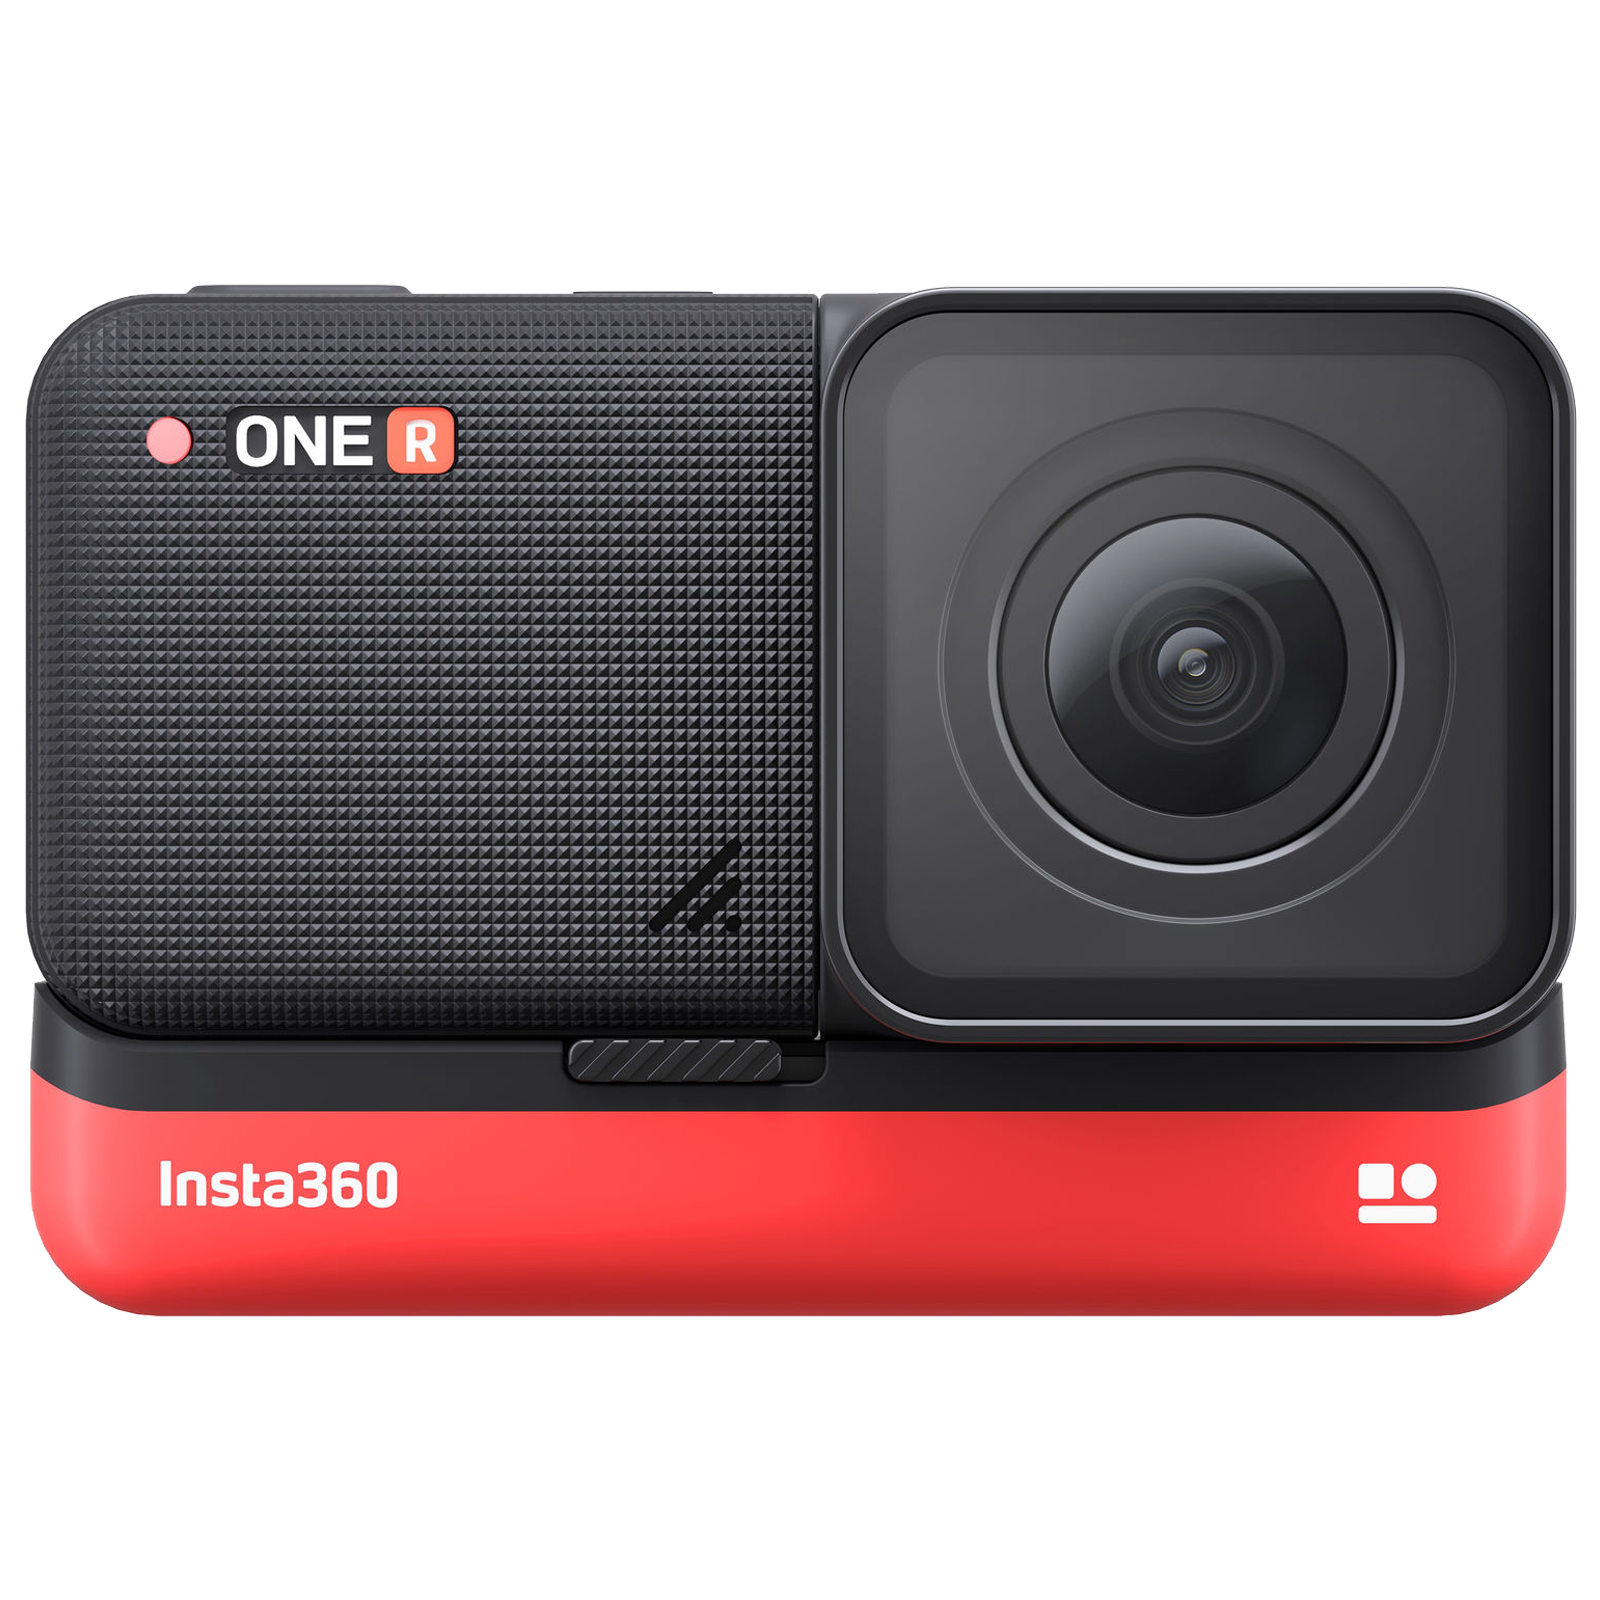 Insta360 One R 4K Edition 12MP Action Camera (1x Optical Zoom, Voice Control, IN.00000008.01, Black)_1